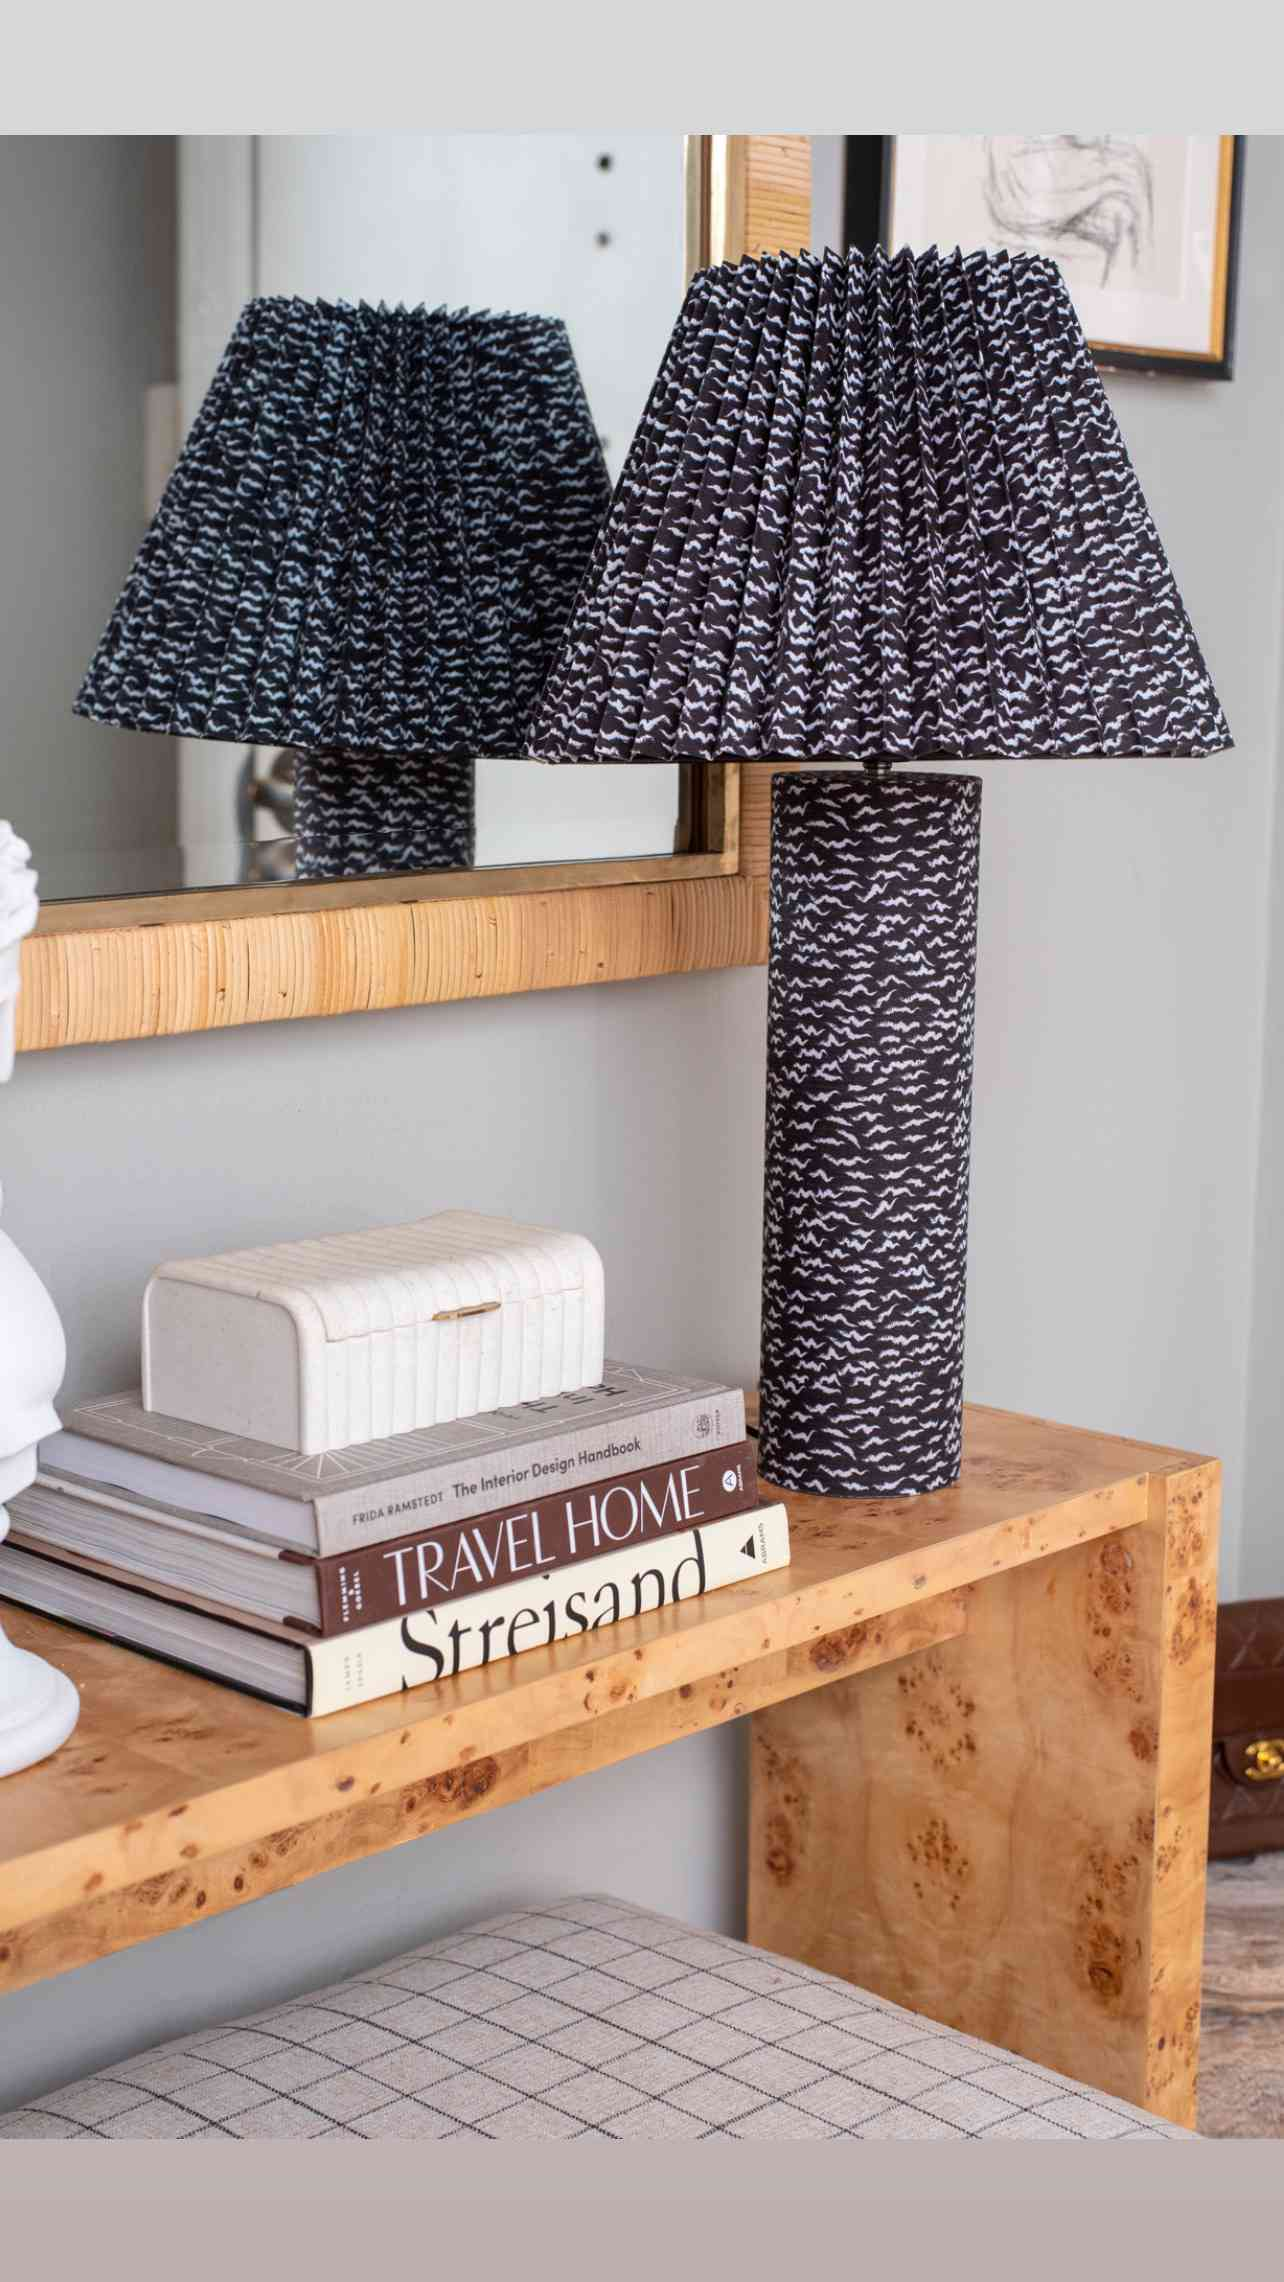 Accent lamp on burl wood side table.